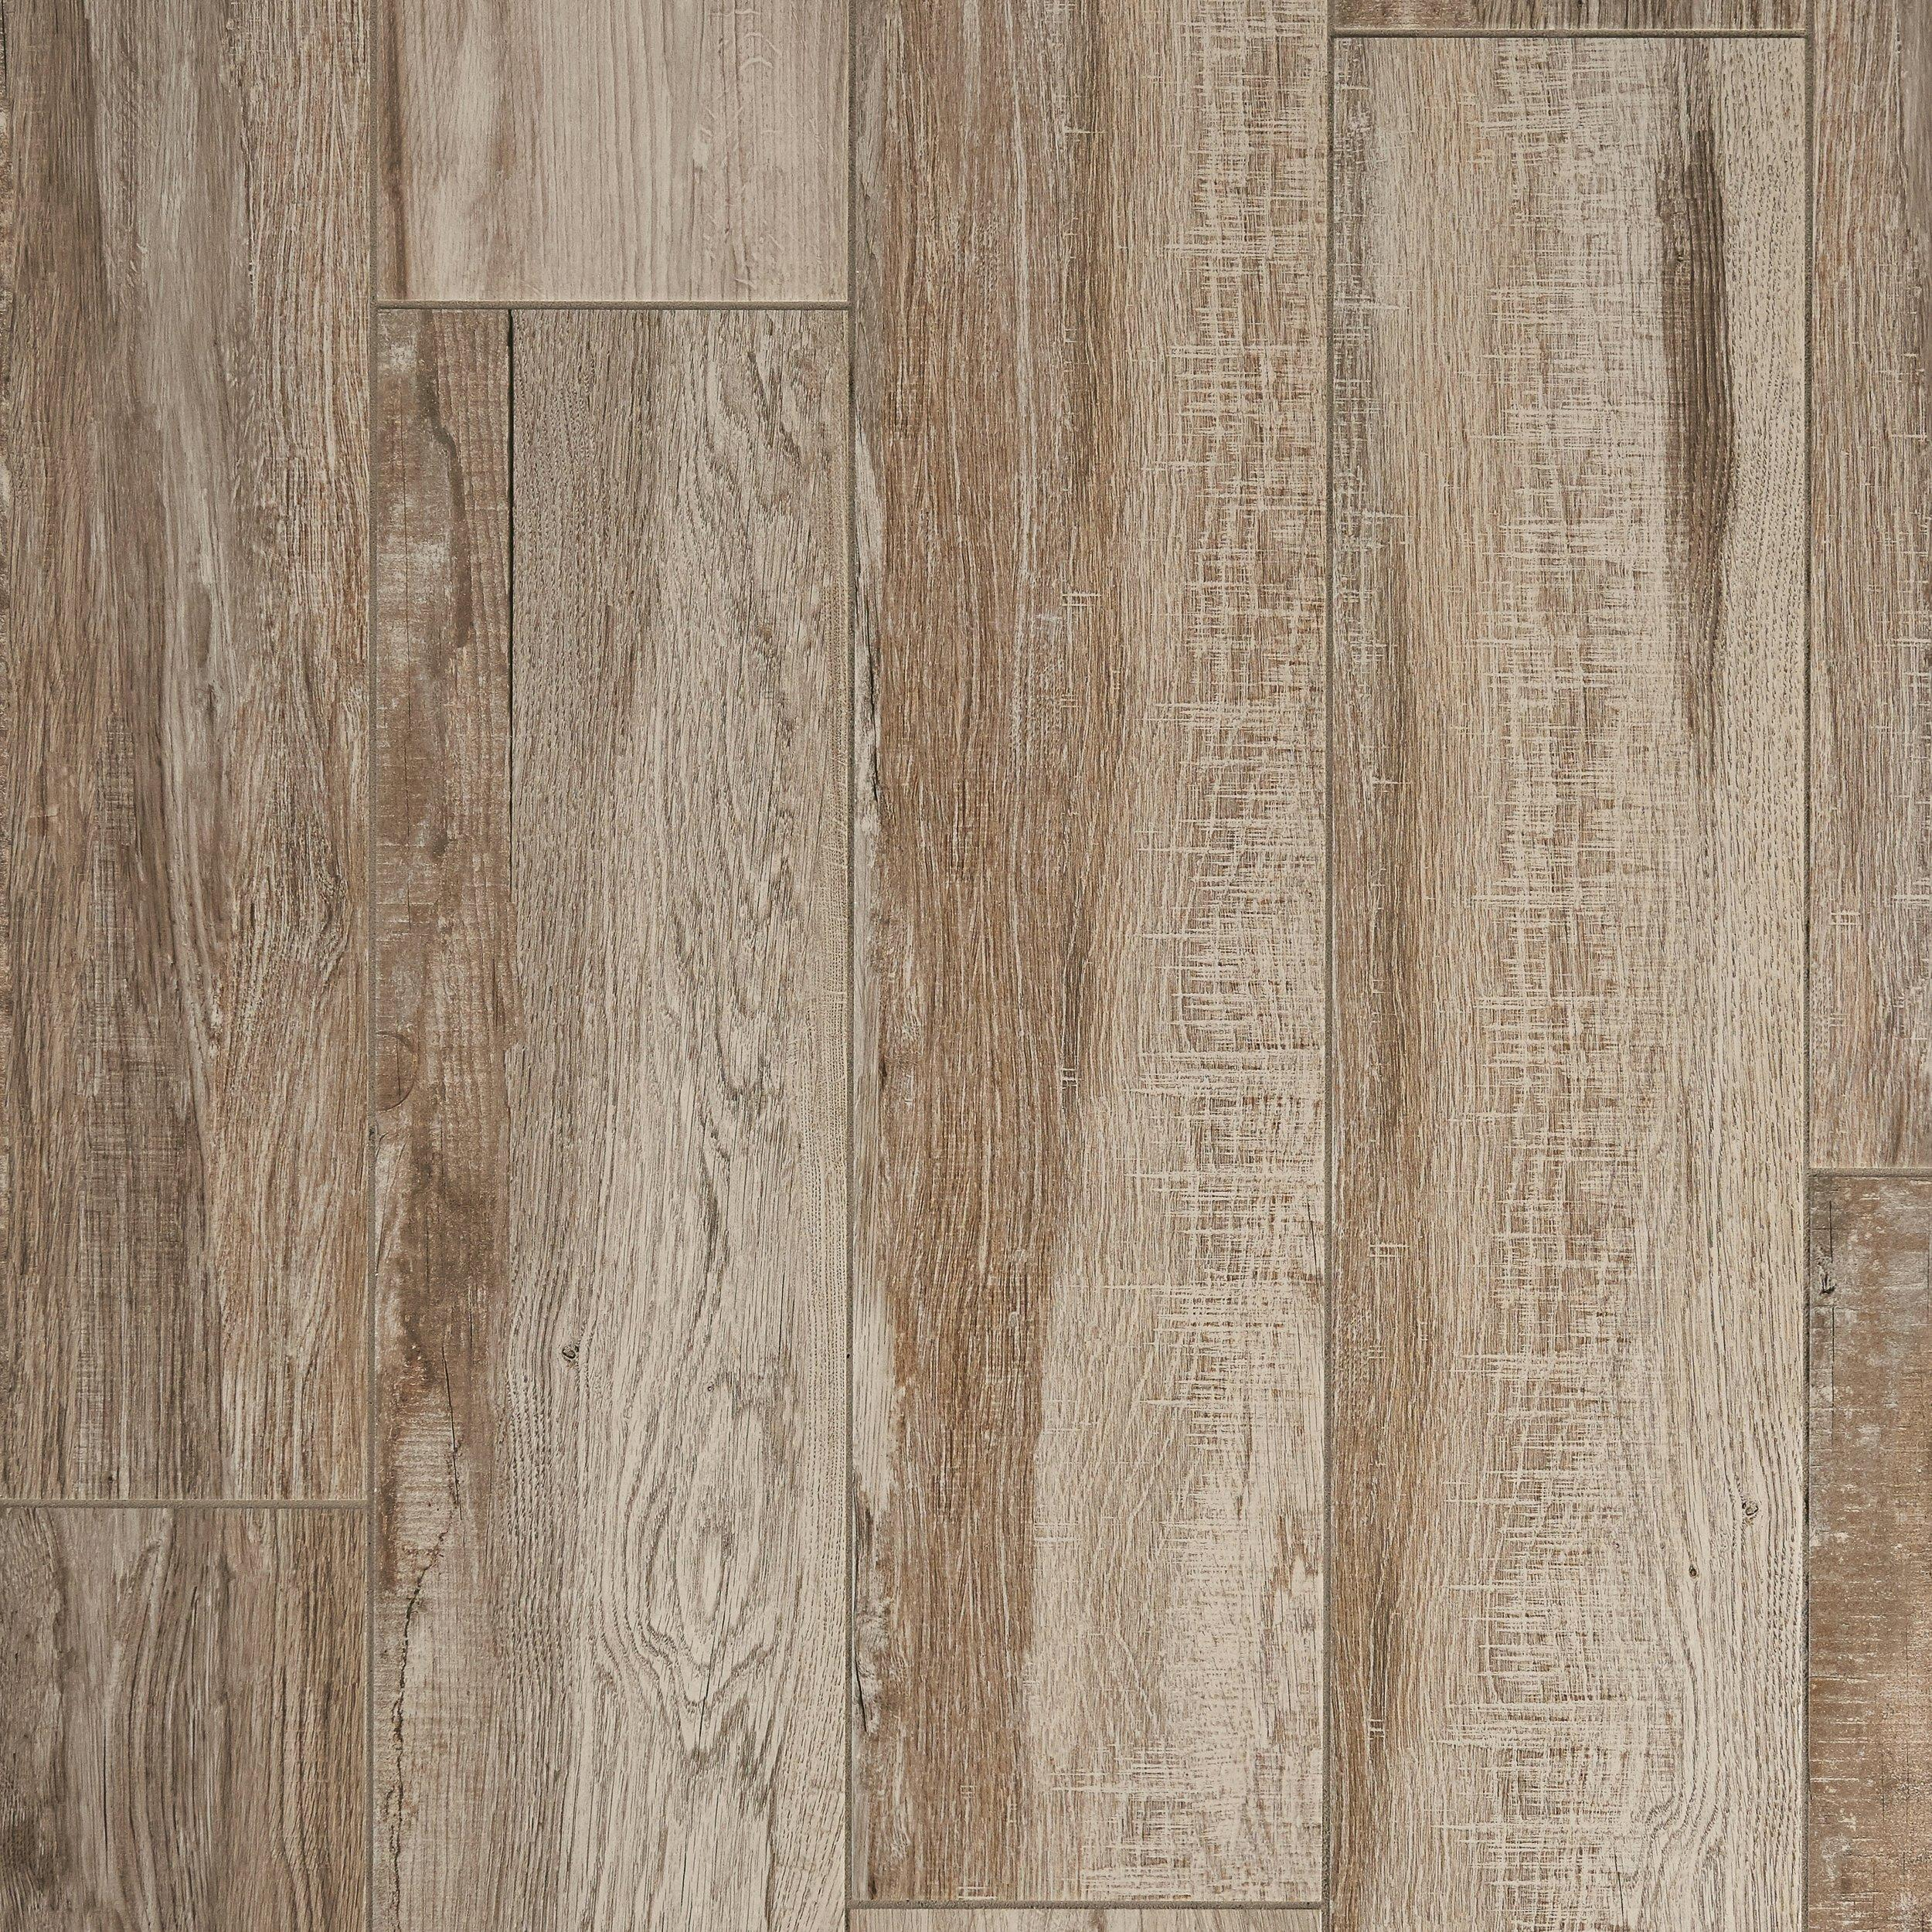 New Kent Gray Wood Plank Ceramic Tile   8 X 40   100213156 | Floor And Decor